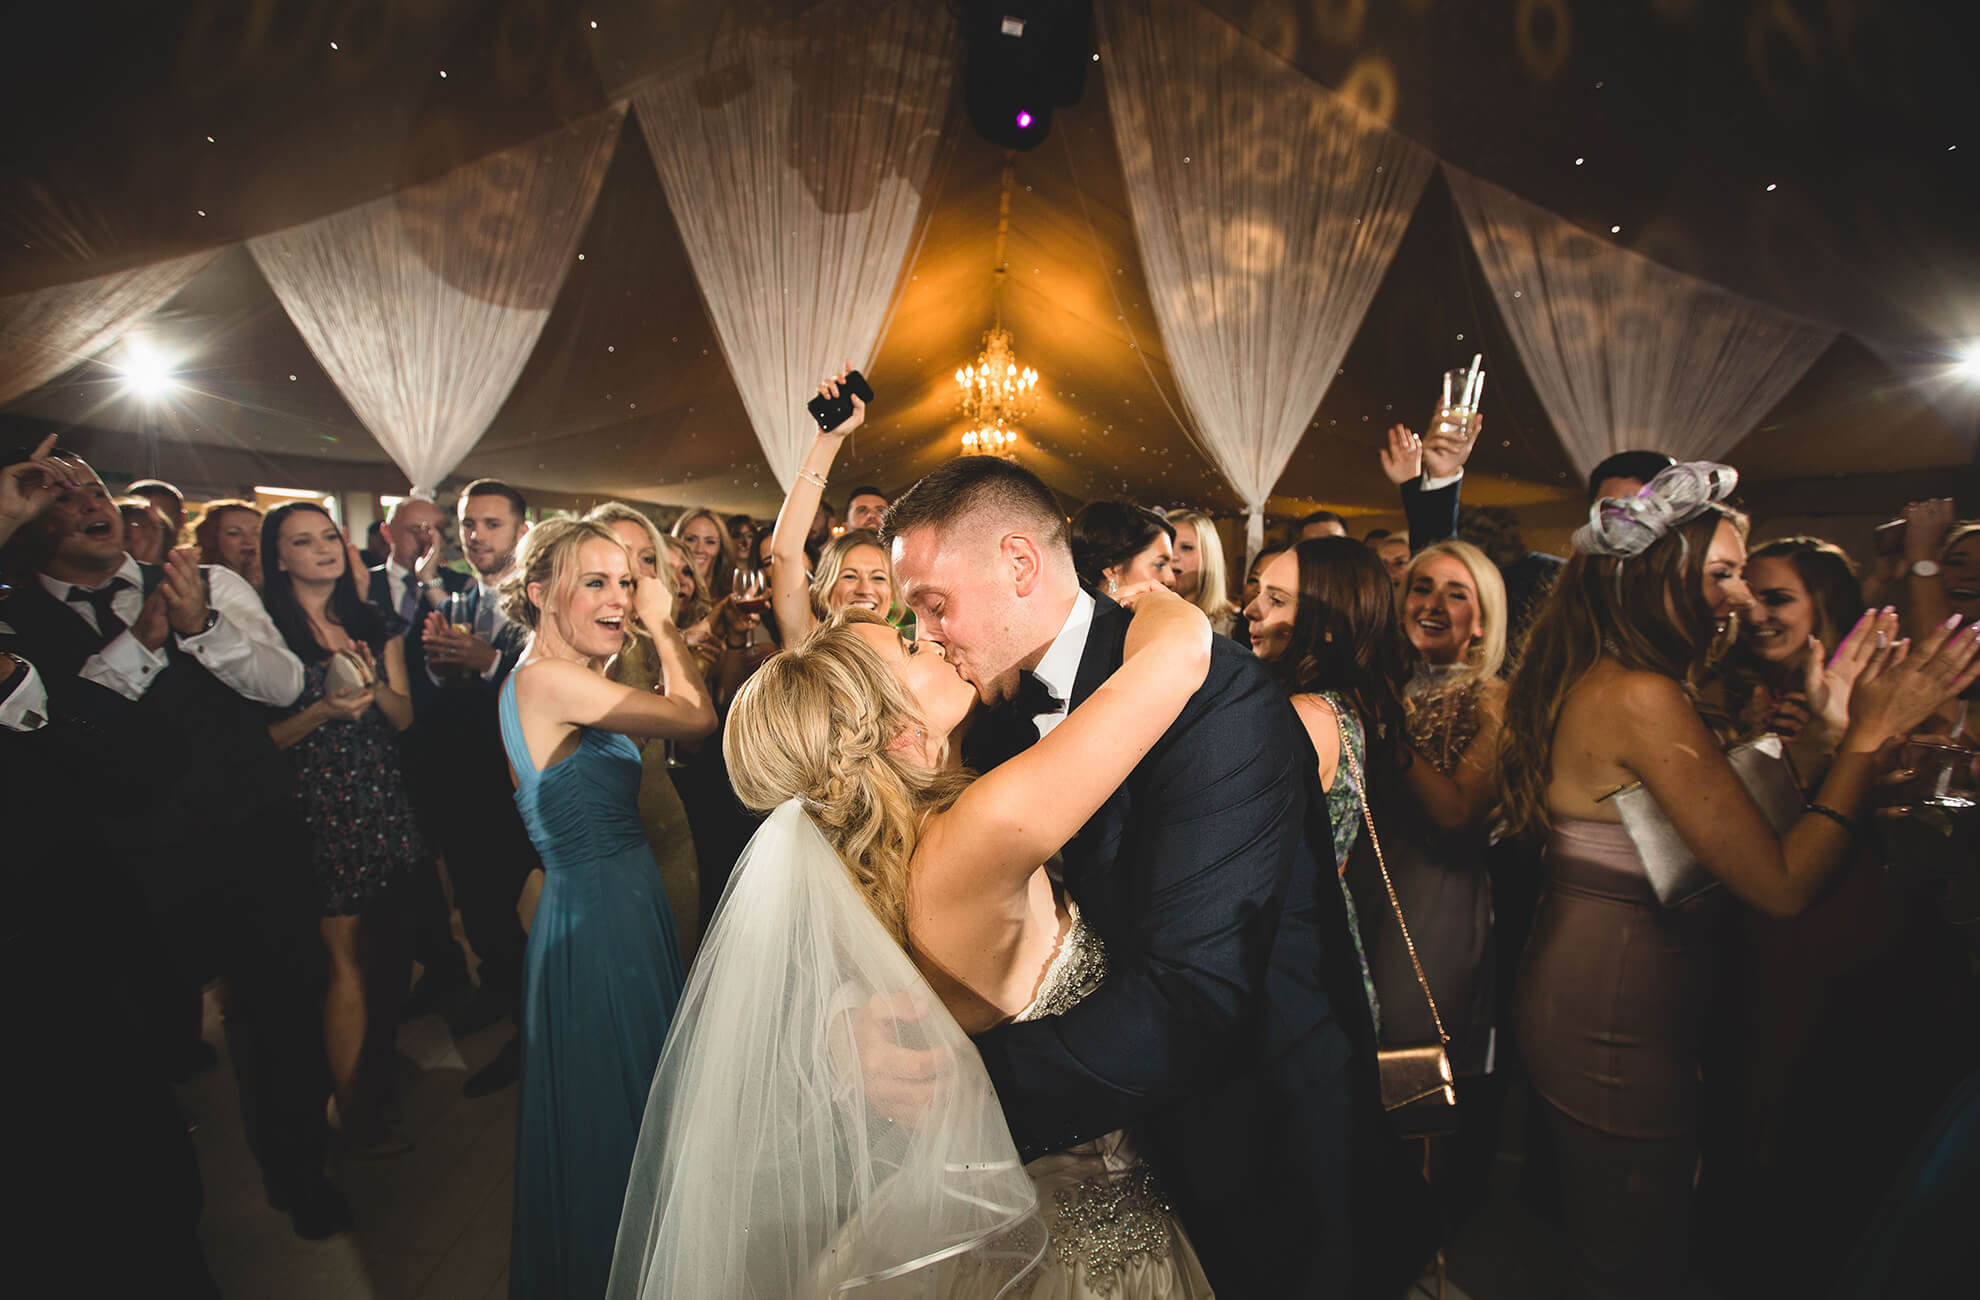 A husband and wife enjoy their first dance in the Pavillion at Combermere Abbey in Cheshire